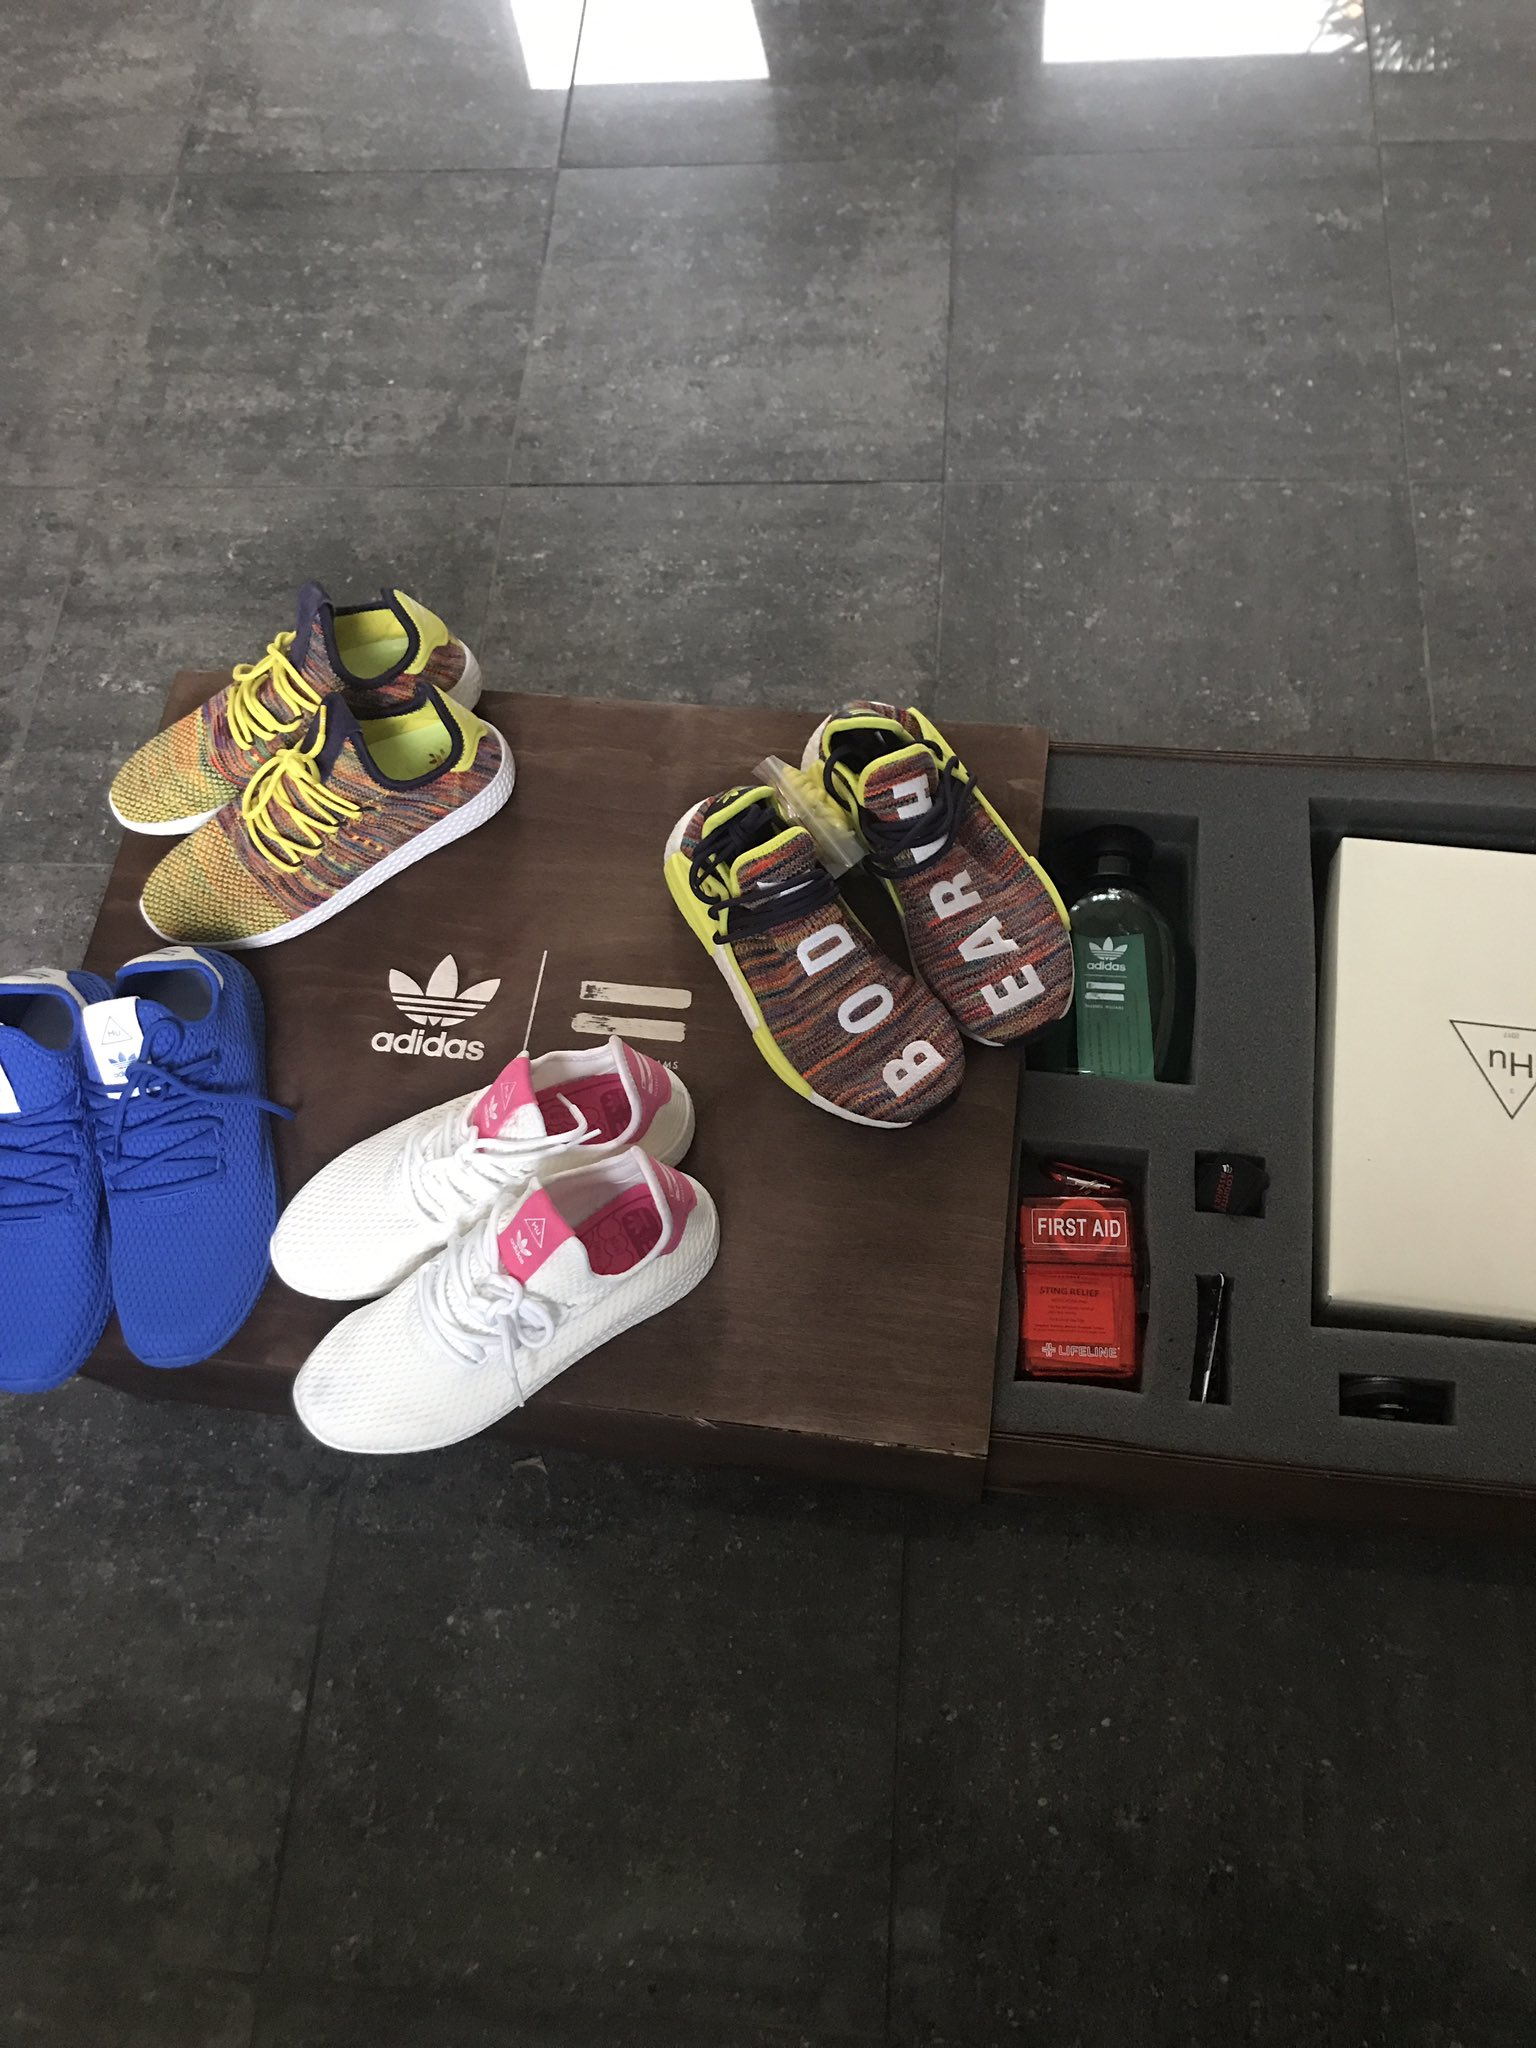 Thank u my bruh @Pharrell who always keep me laced up in the fresh kicks!������������ VA style https://t.co/jEl3qHglIh